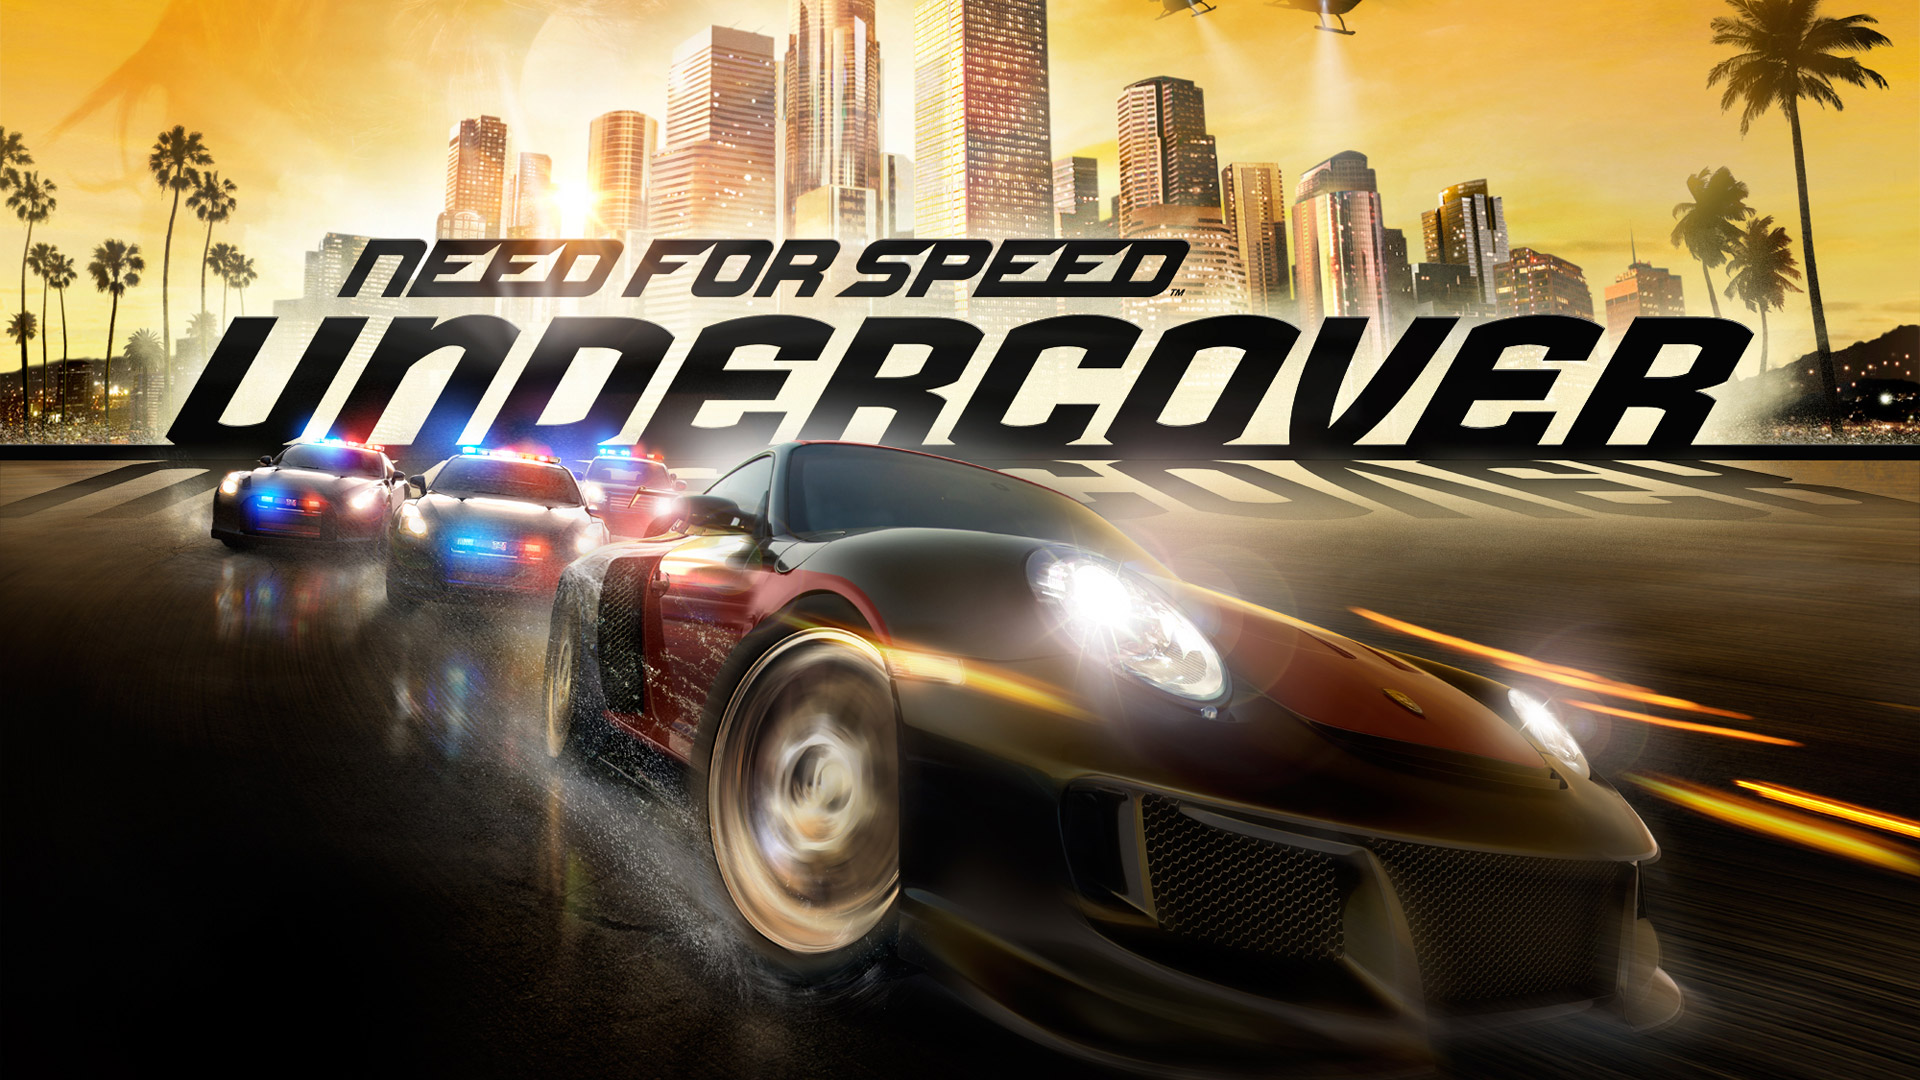 Need for Speed: Undercover Wallpaper in 1920x1080